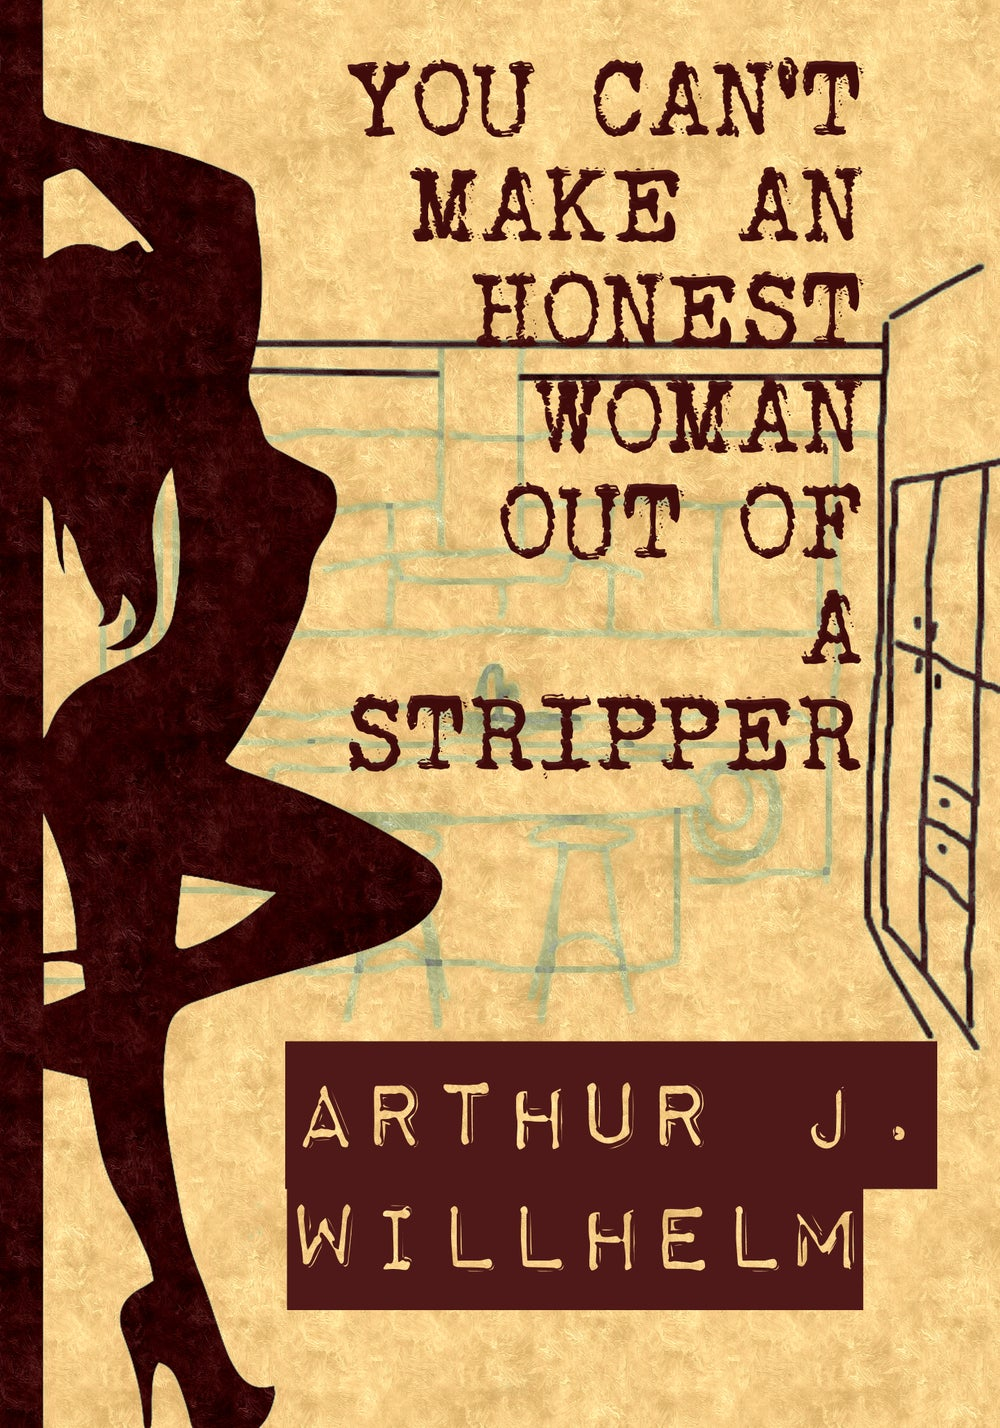 Image of You can't make an honest woman out of a stripper by Arthur J. Willhelm